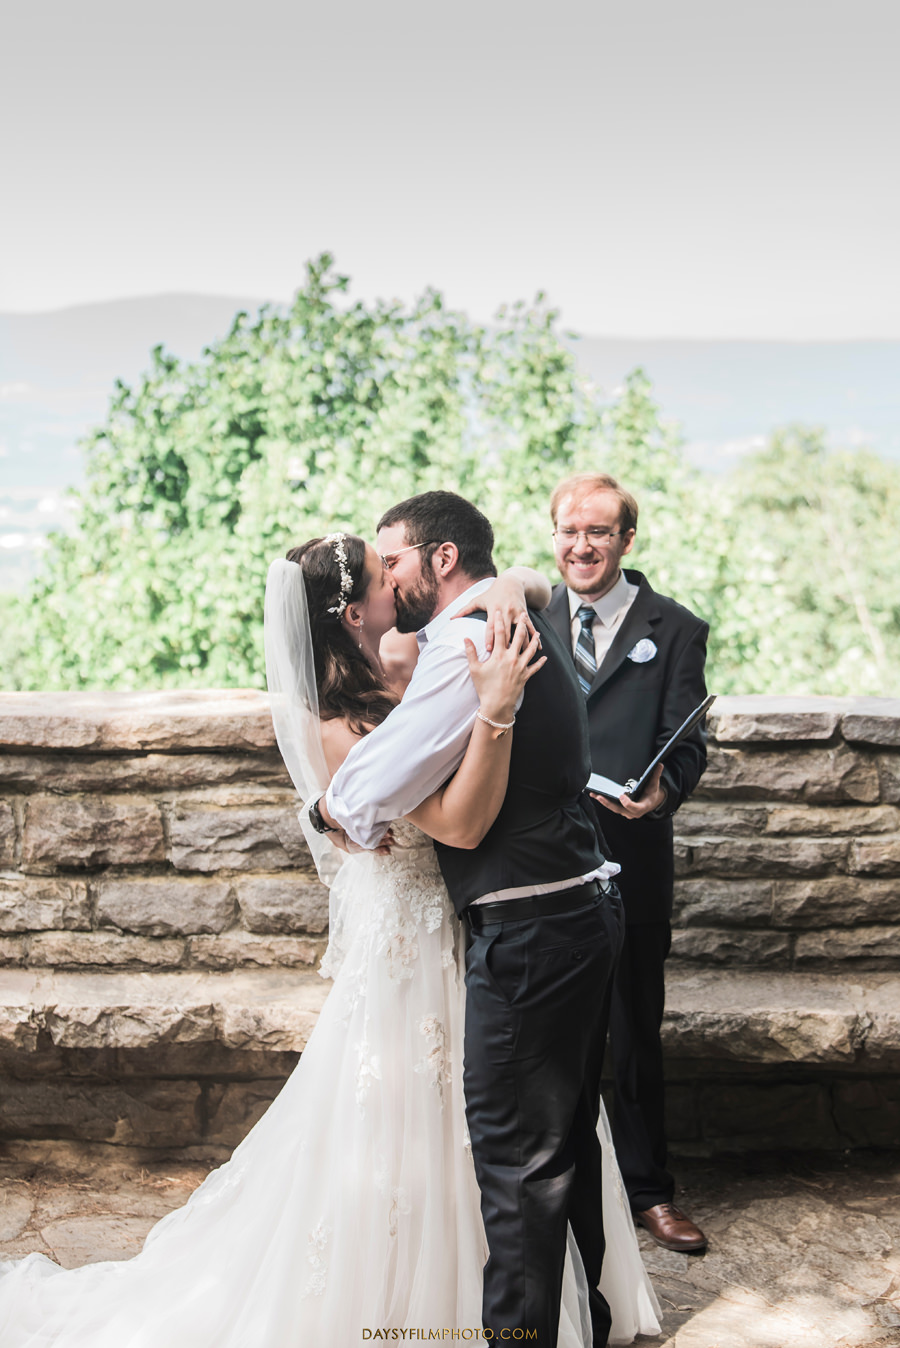 Gambrill state park tea room wedding